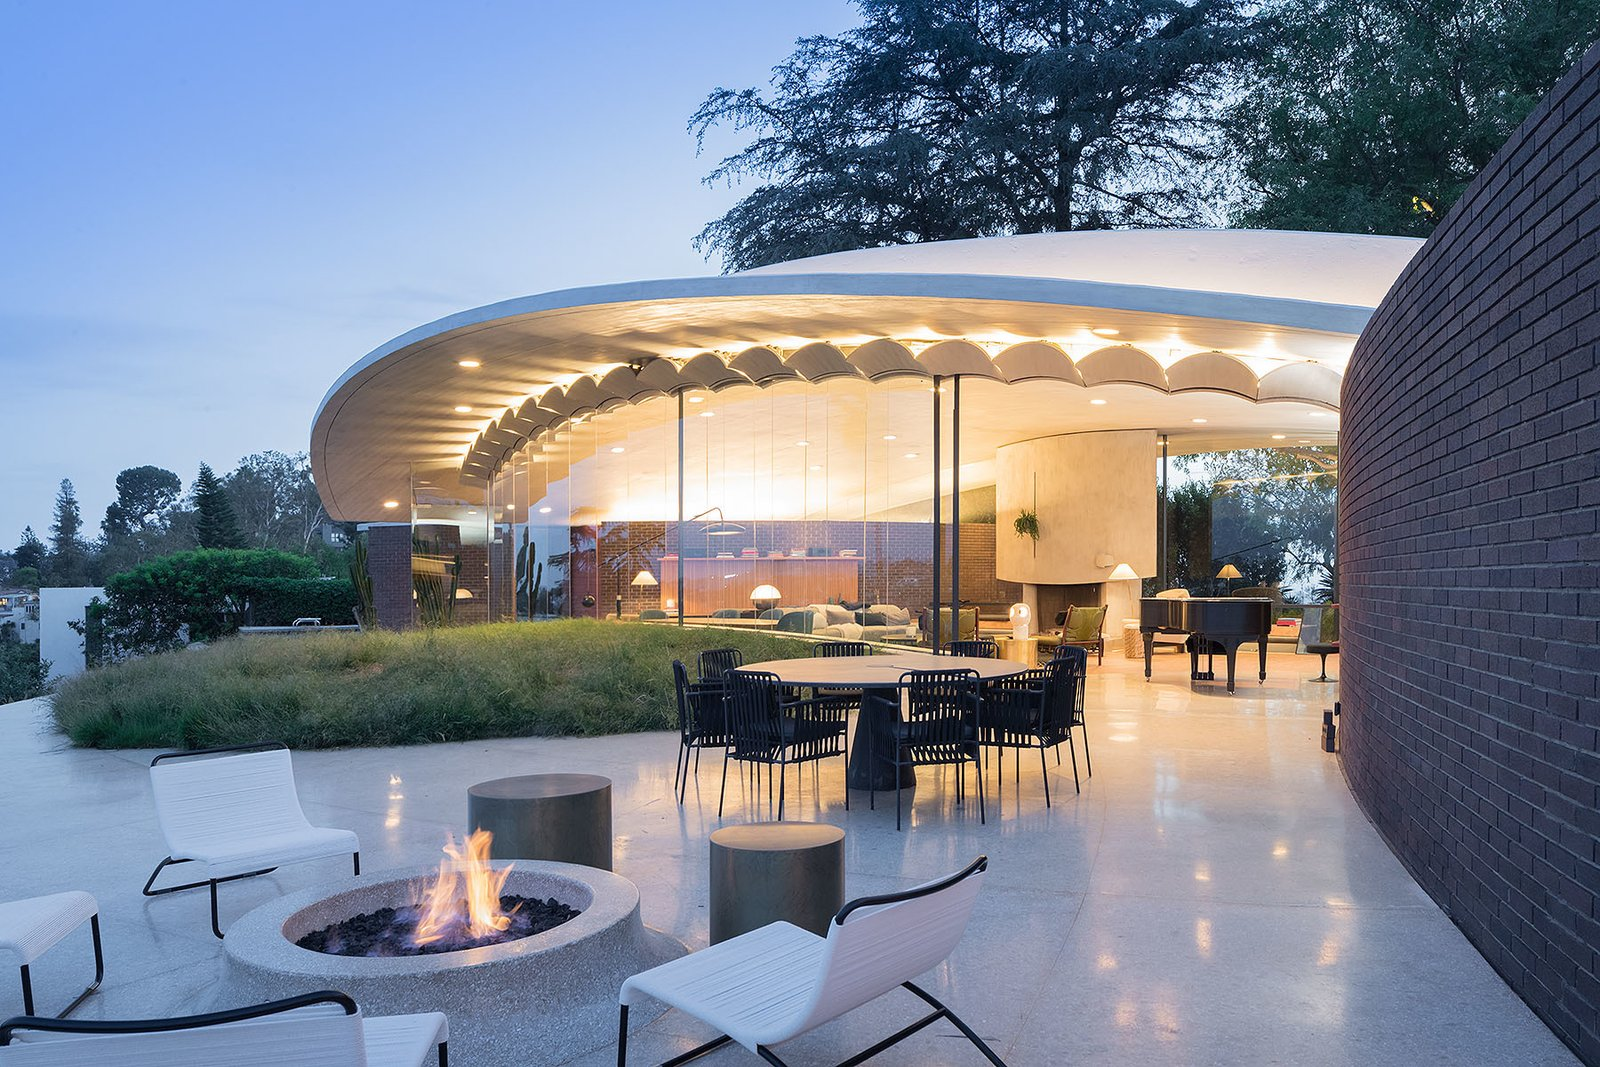 Trend Report: Architect Barbara Bestor Sounds Off on the New Glass House